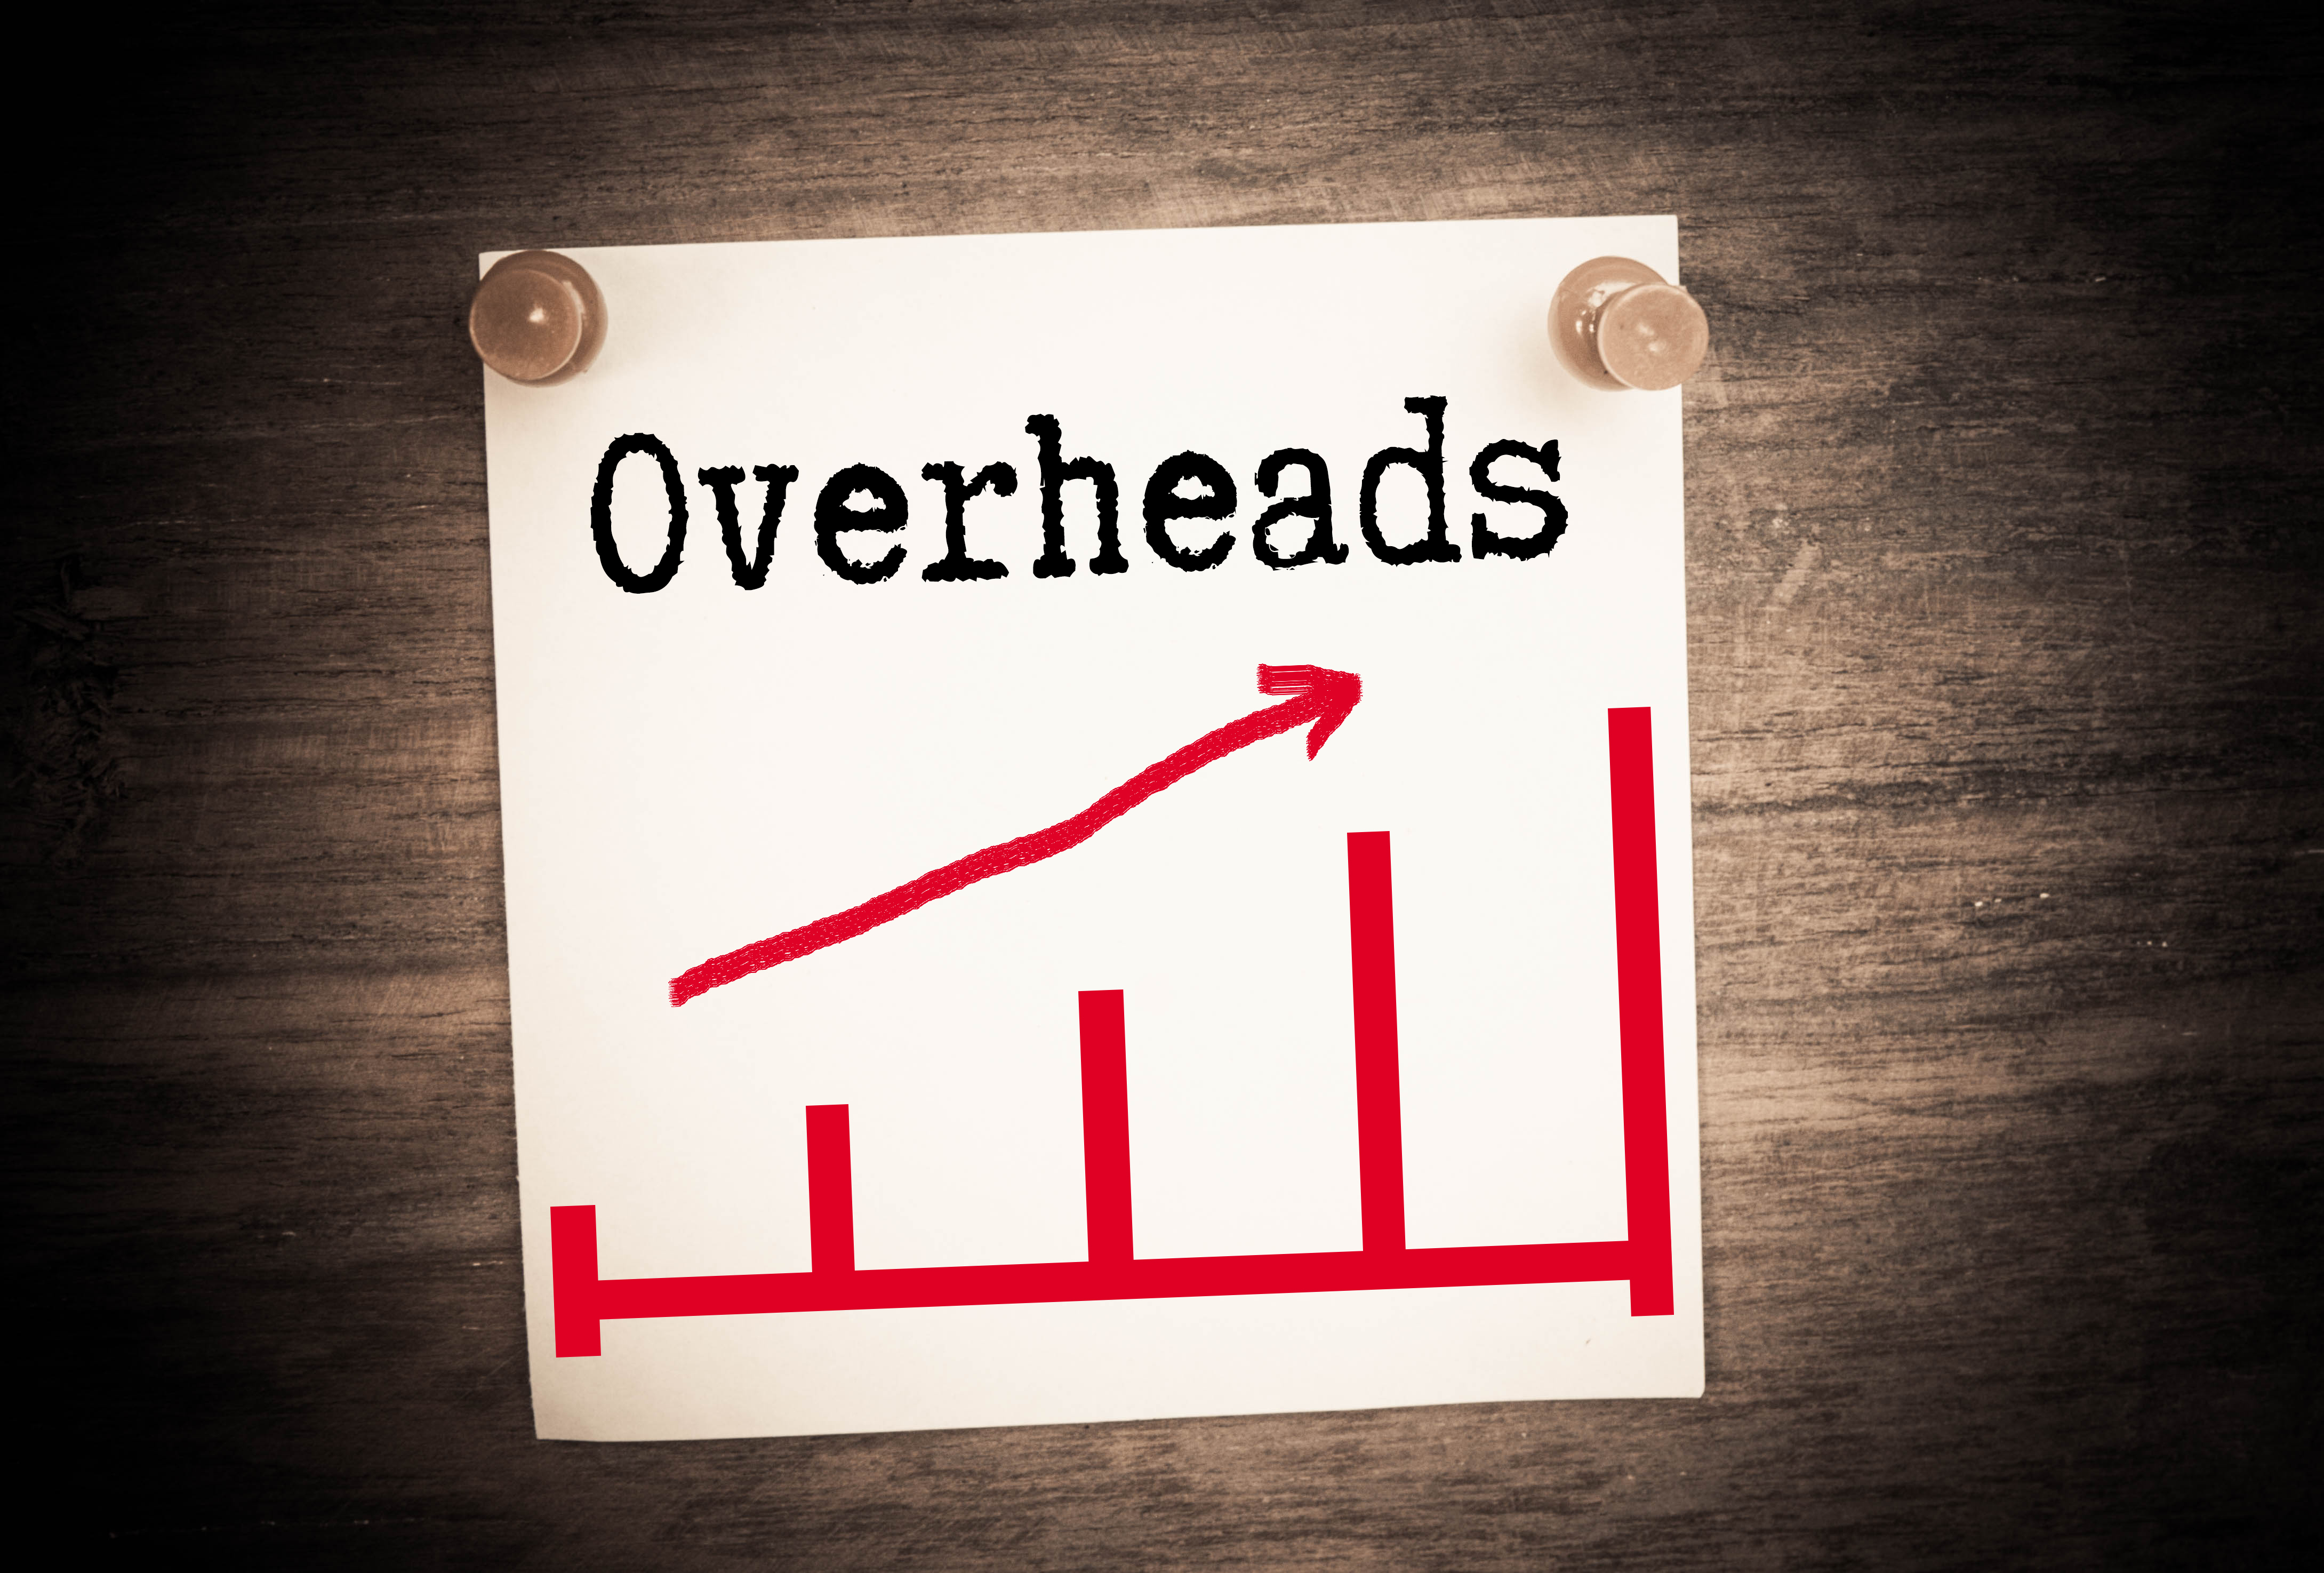 rising overhead costs